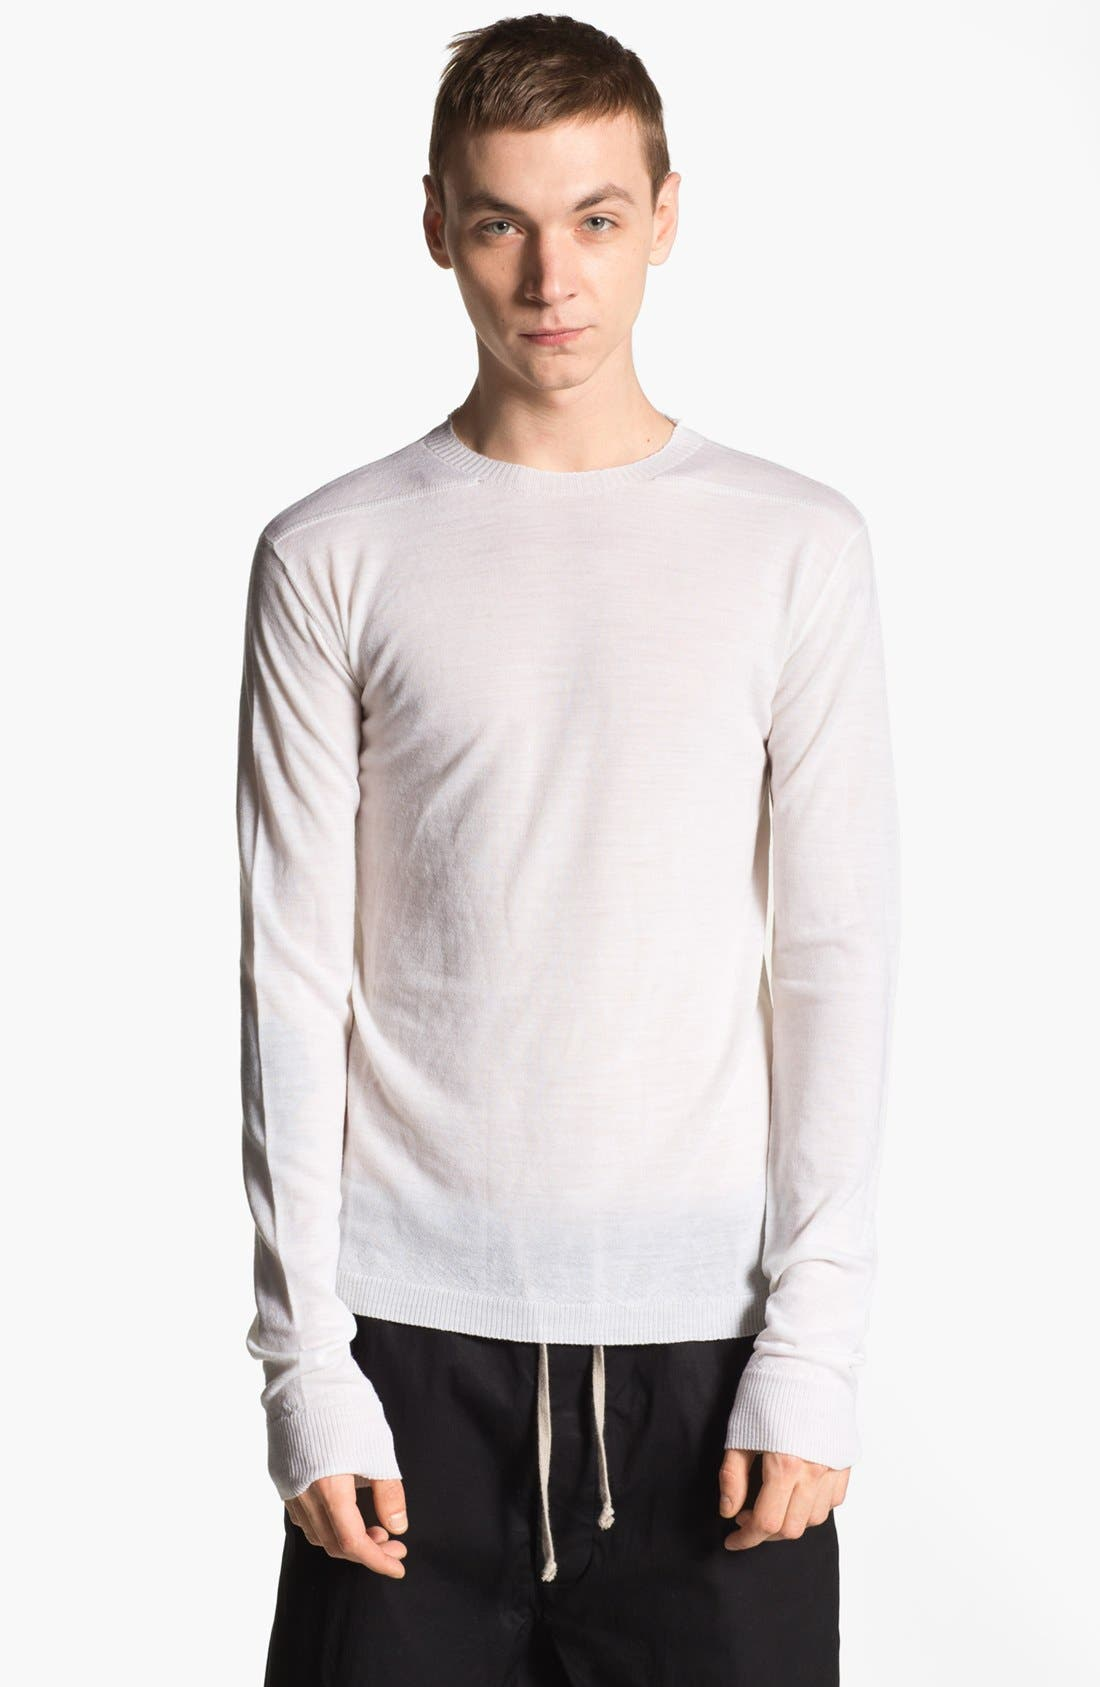 Alternate Image 1 Selected - Rick Owens 'Island' Crewneck Merino Wool Sweater